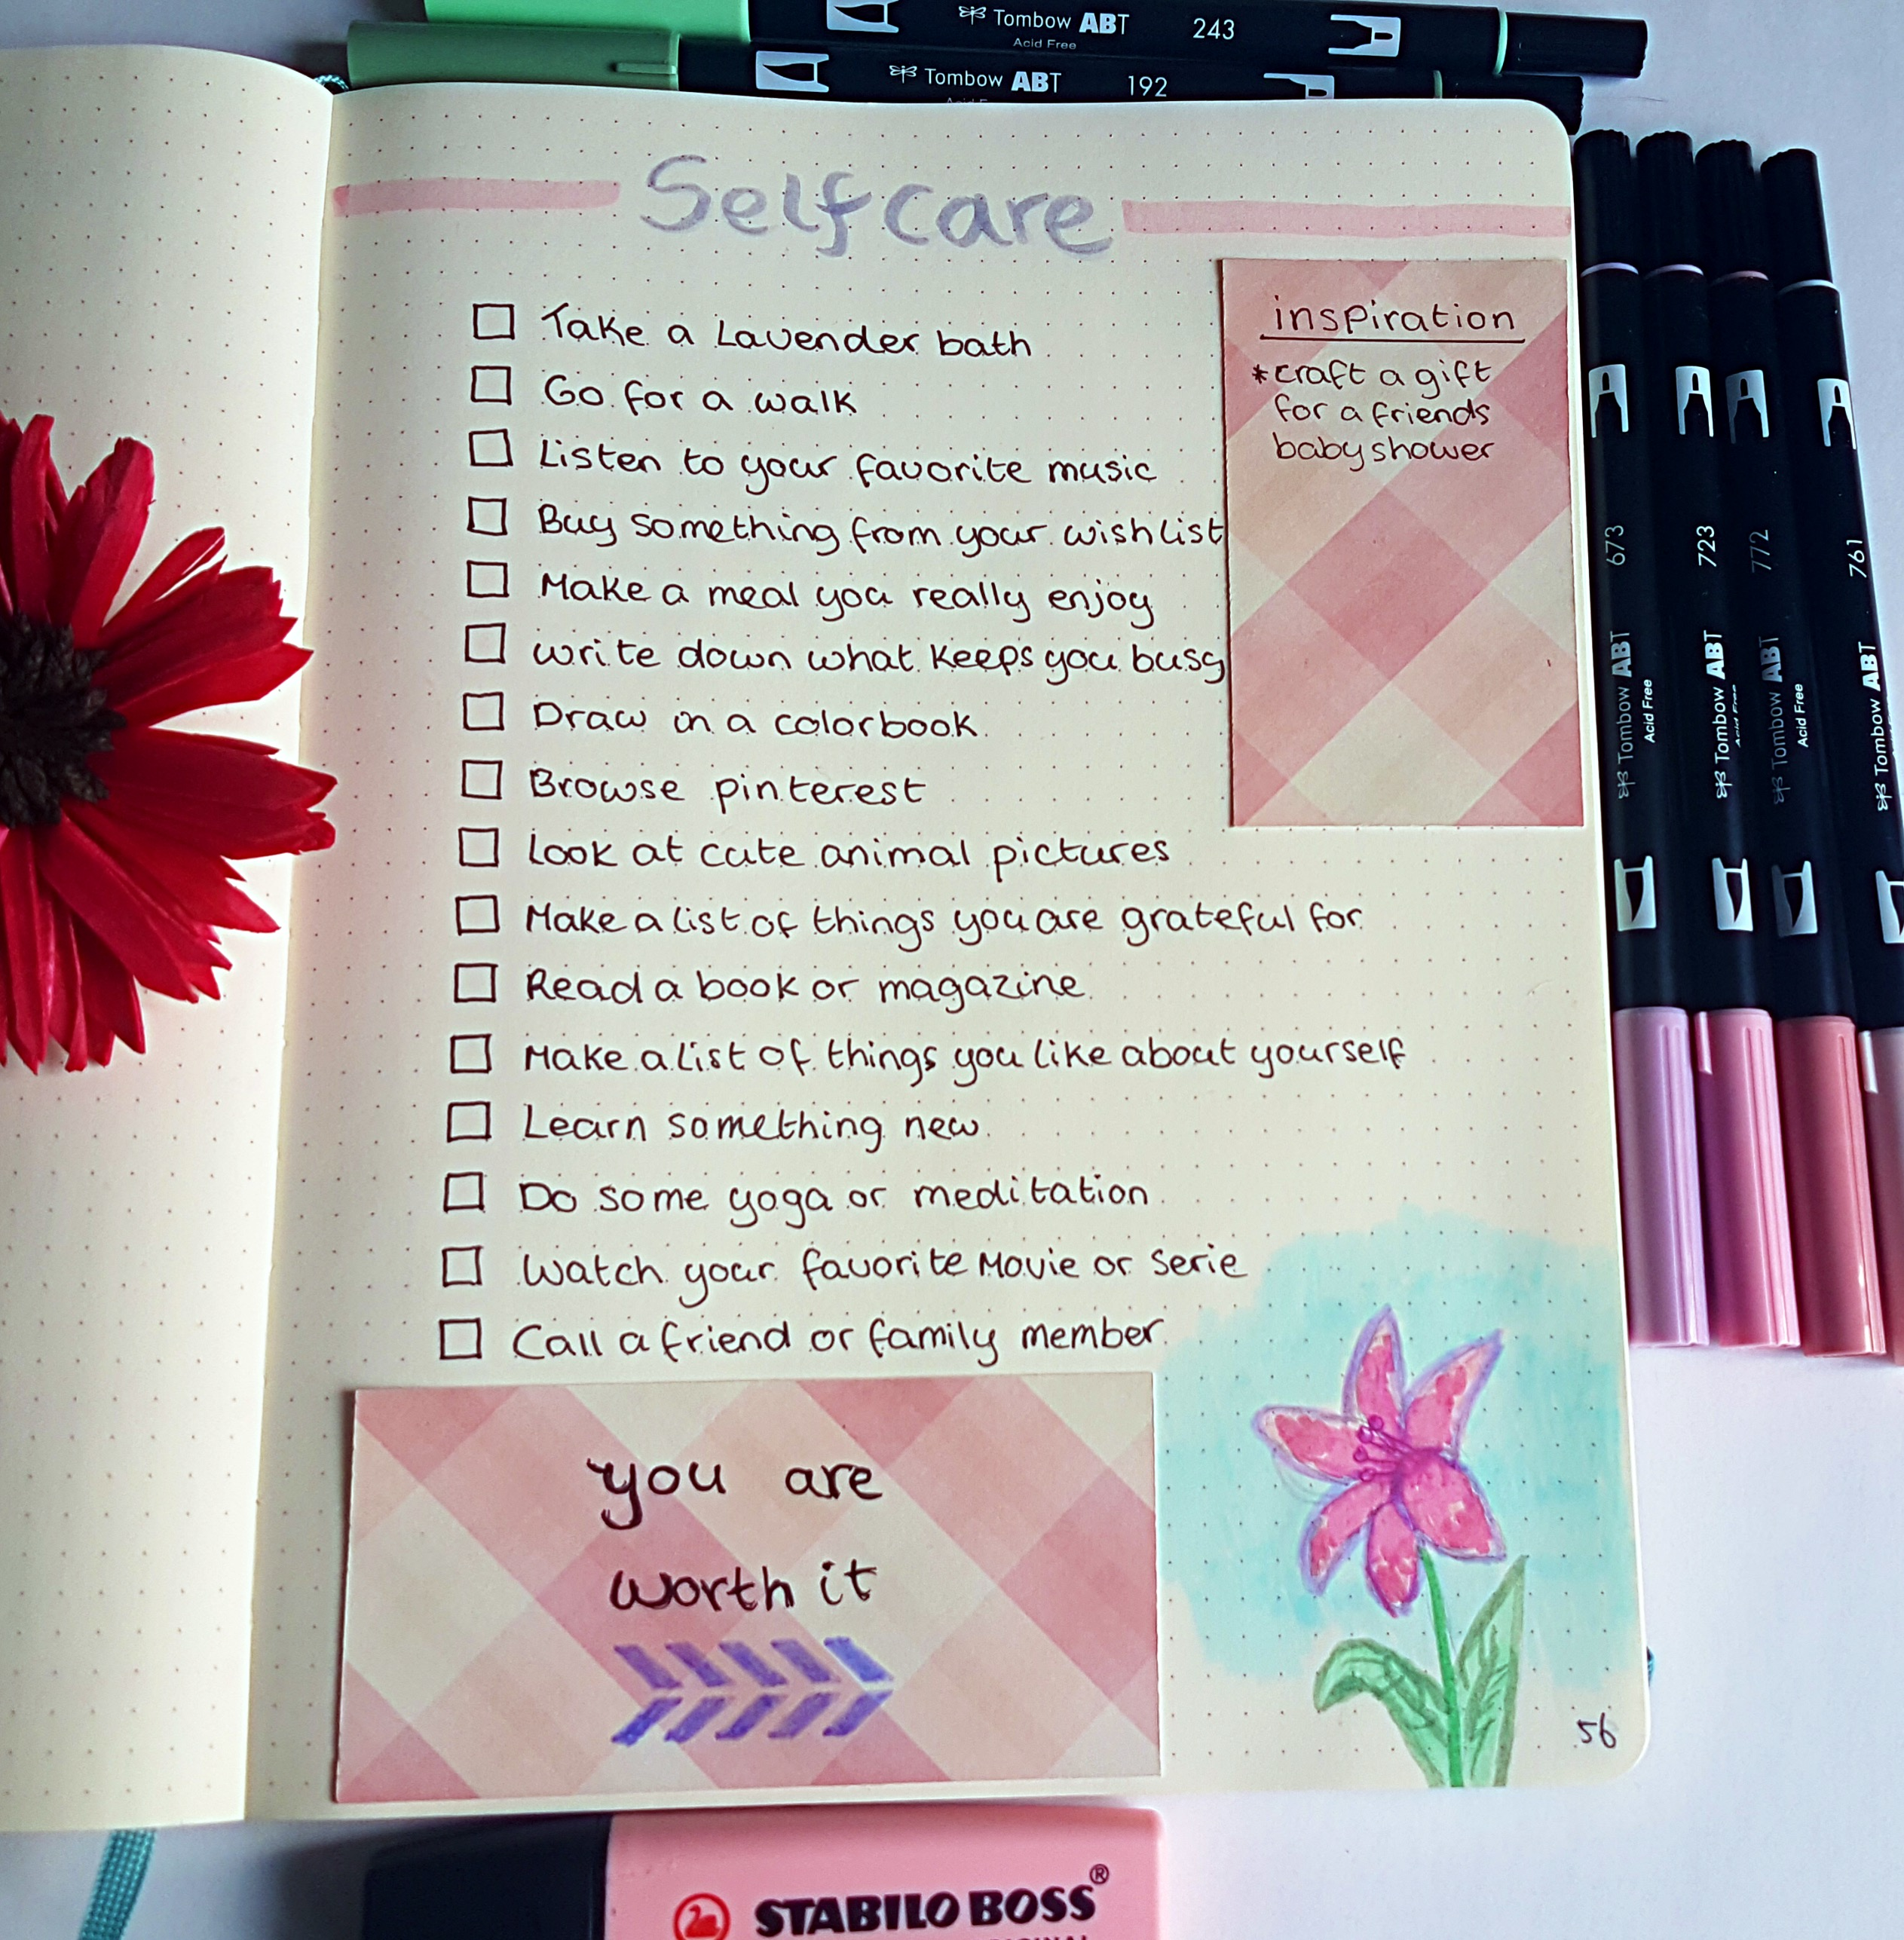 Bullet journal self-care page miss mental | Work on a better you by starting a list of things you can do when you need some much-needed self-care. Works like a charm against stress, anxiety, and depression. This bujo list is easy to make and very good as the first step to self-growth.  #bujo #bulletjournal #planner #selfcare #selfgrowth #stress #anxiety #burnout